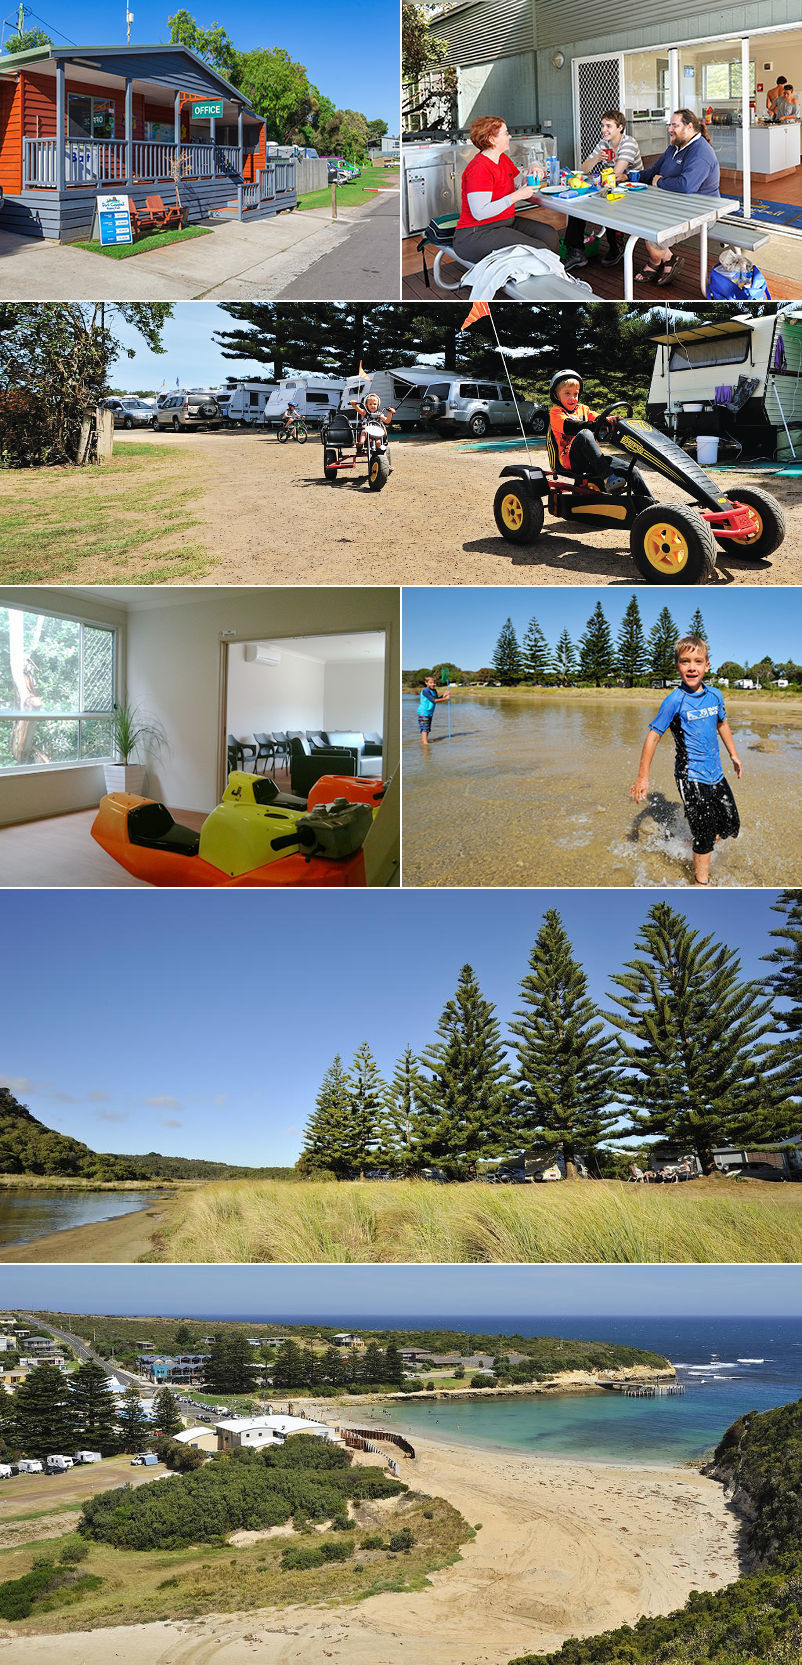 NRMA Port Campbell Holiday Park - Grounds and facilities